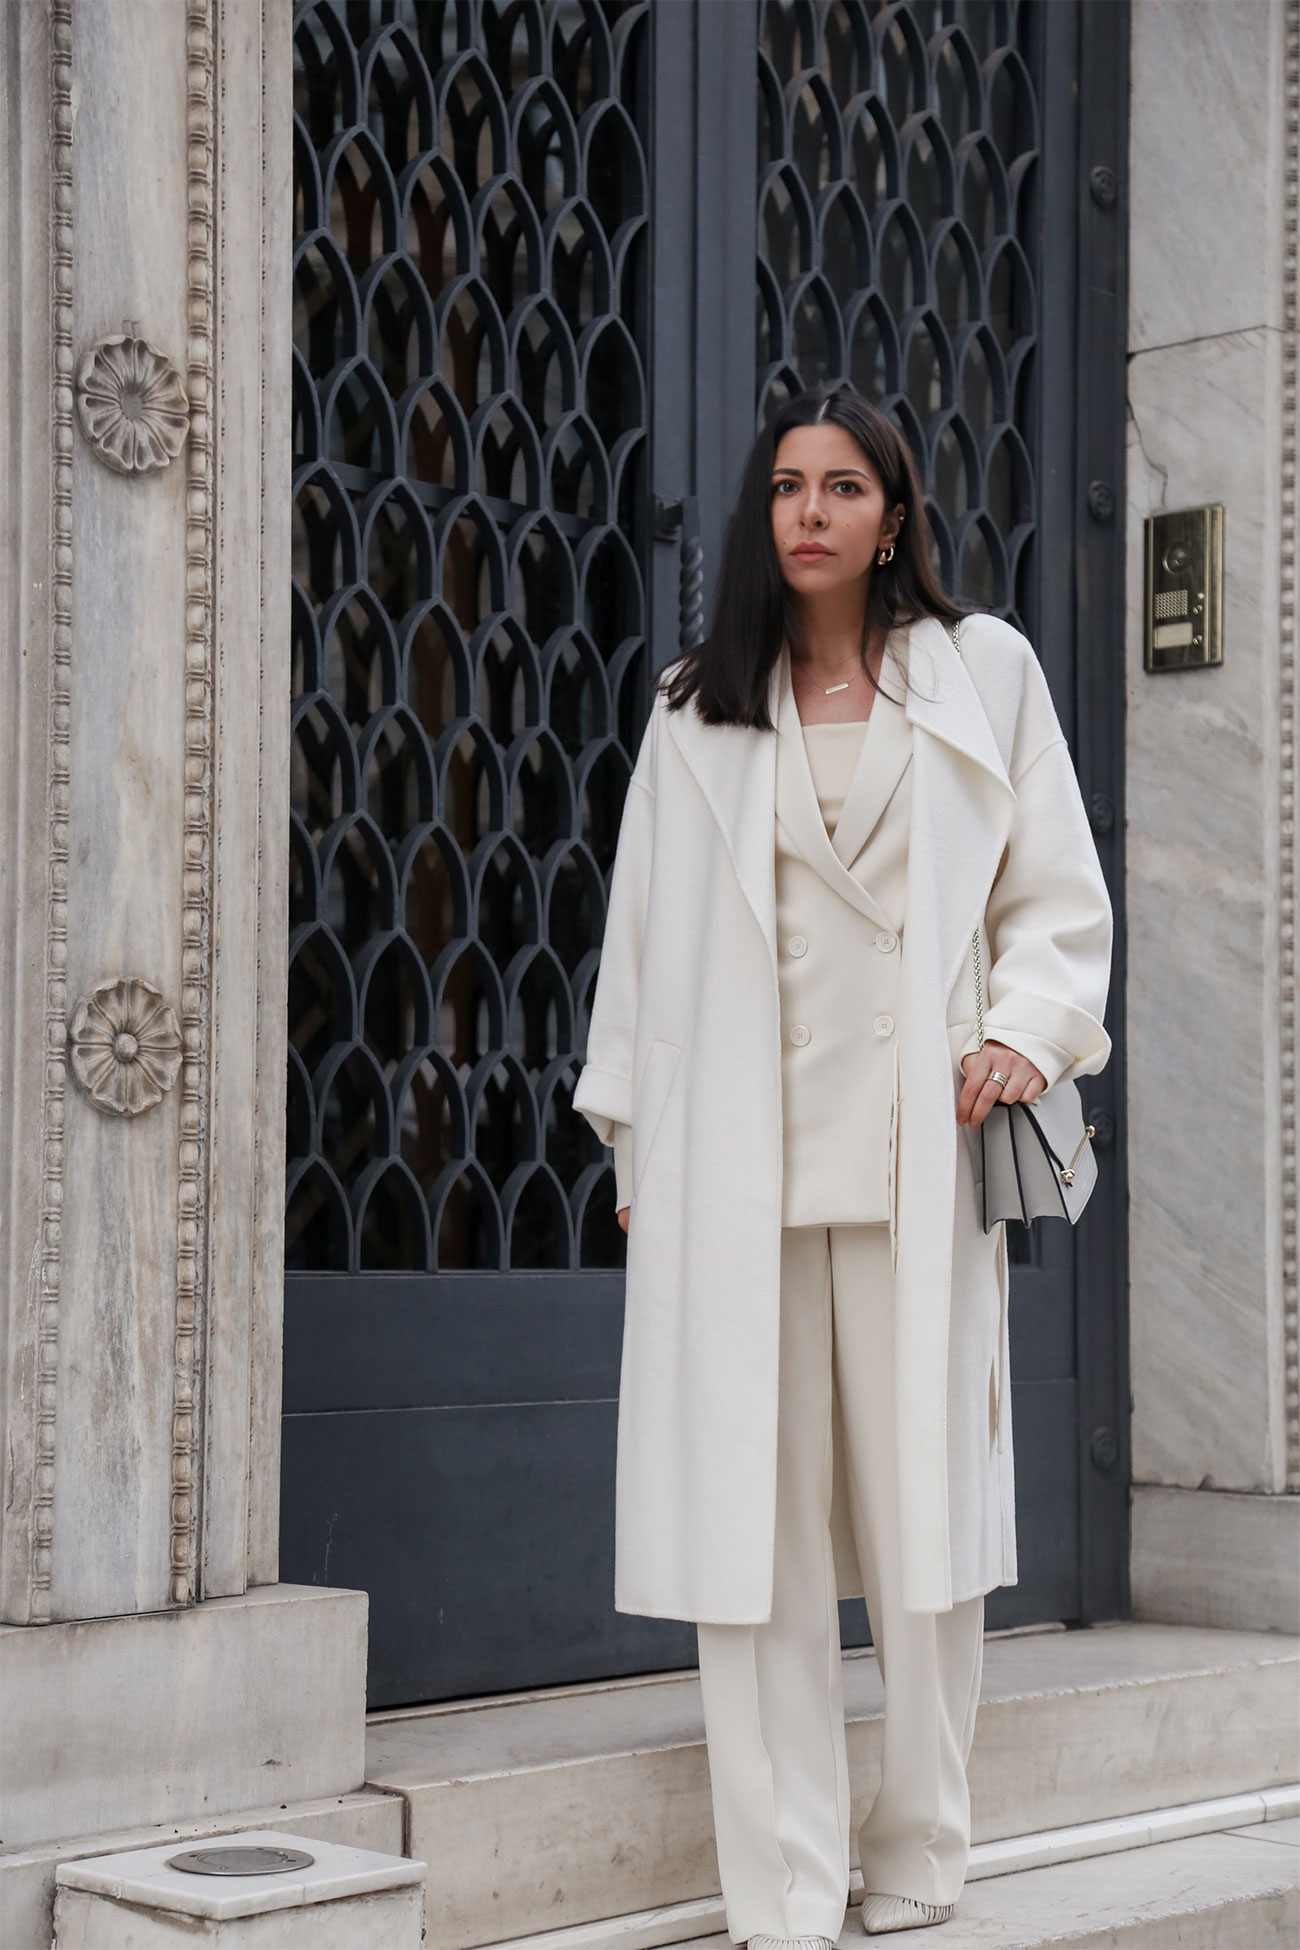 Total white look by Stella Asteria, wearing a white pantsuit with wool coat, faux leather top, high heels in white and Strathberry bag in grey